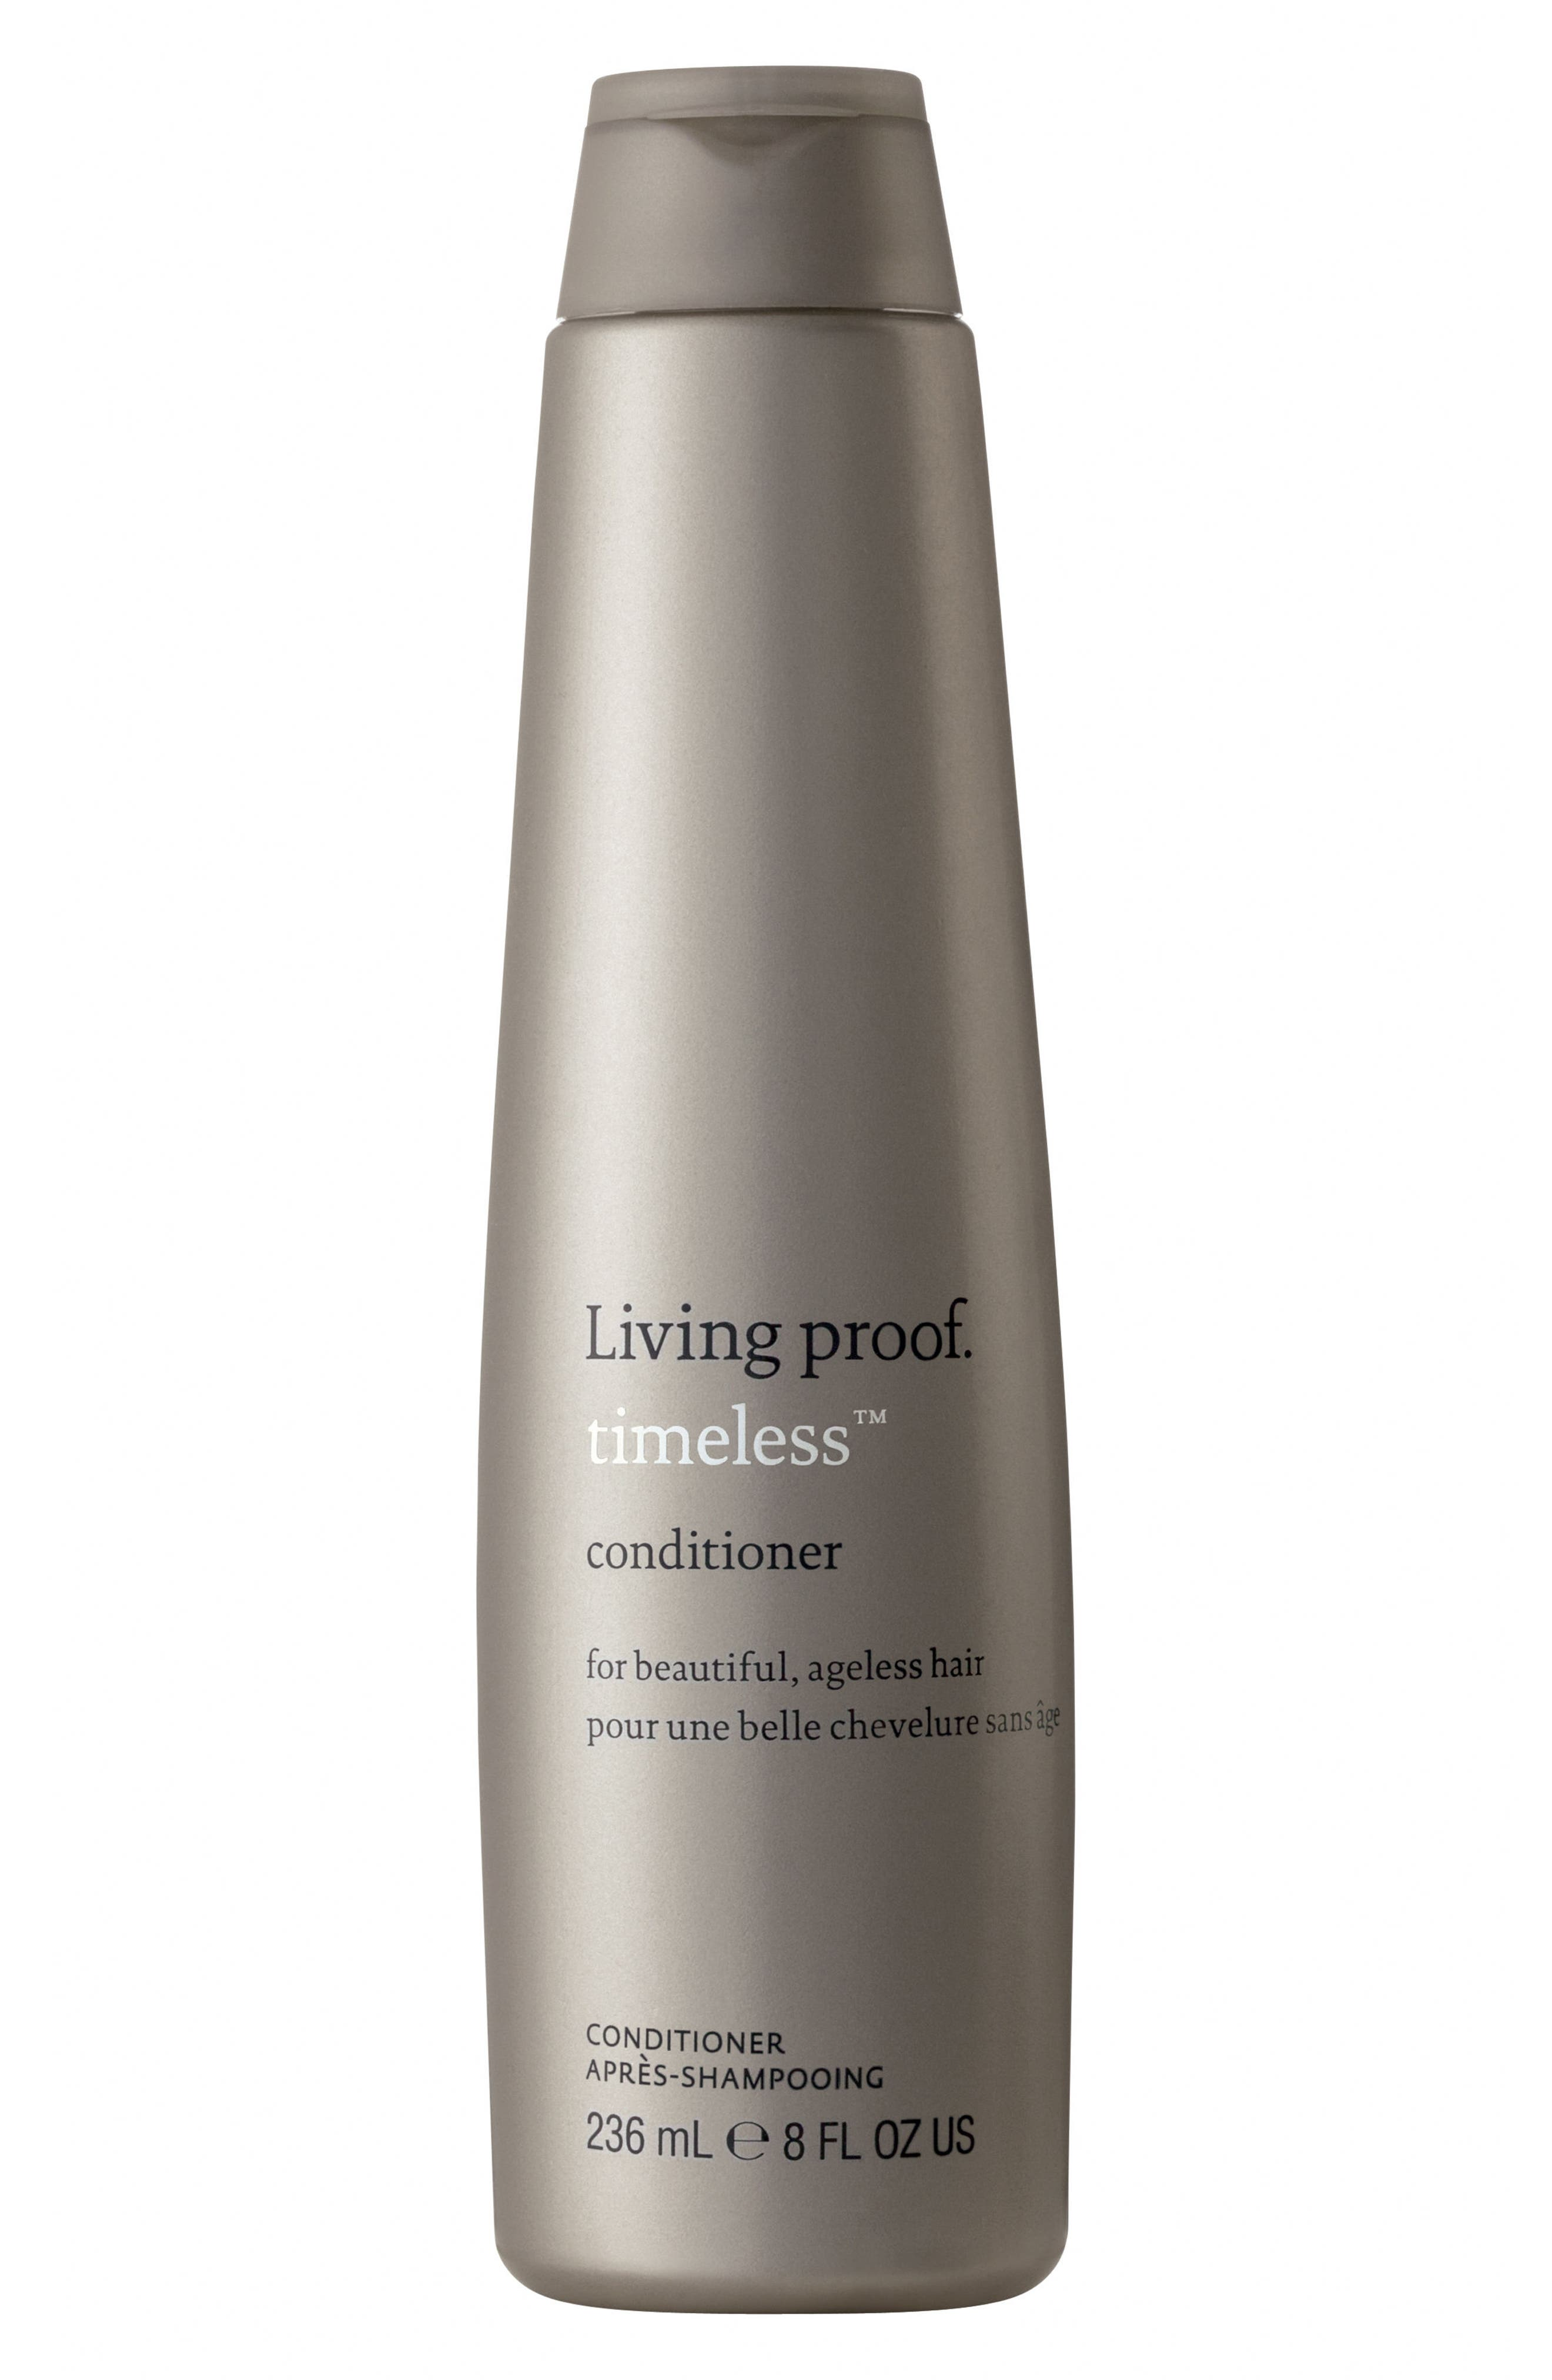 Main Image - Living proof® Timeless Conditioner